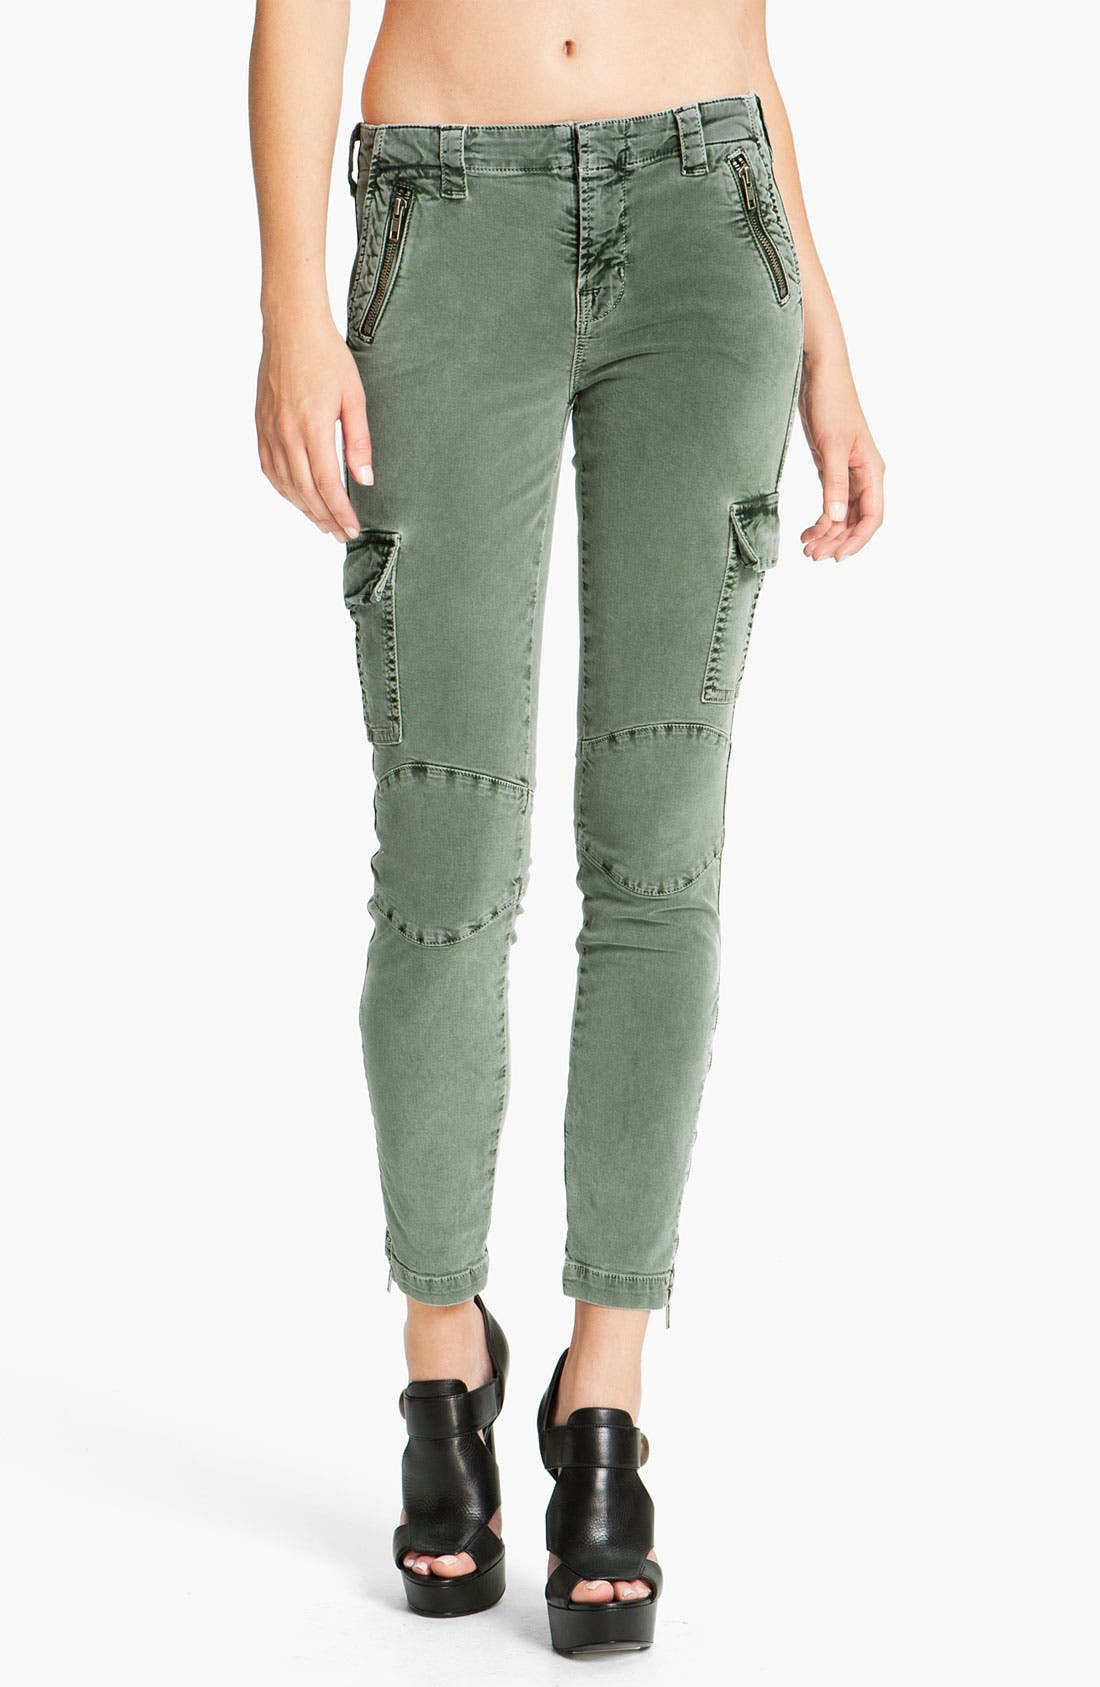 Alternate Image 1 Selected - J Brand 'Maverick' Cargo Pants